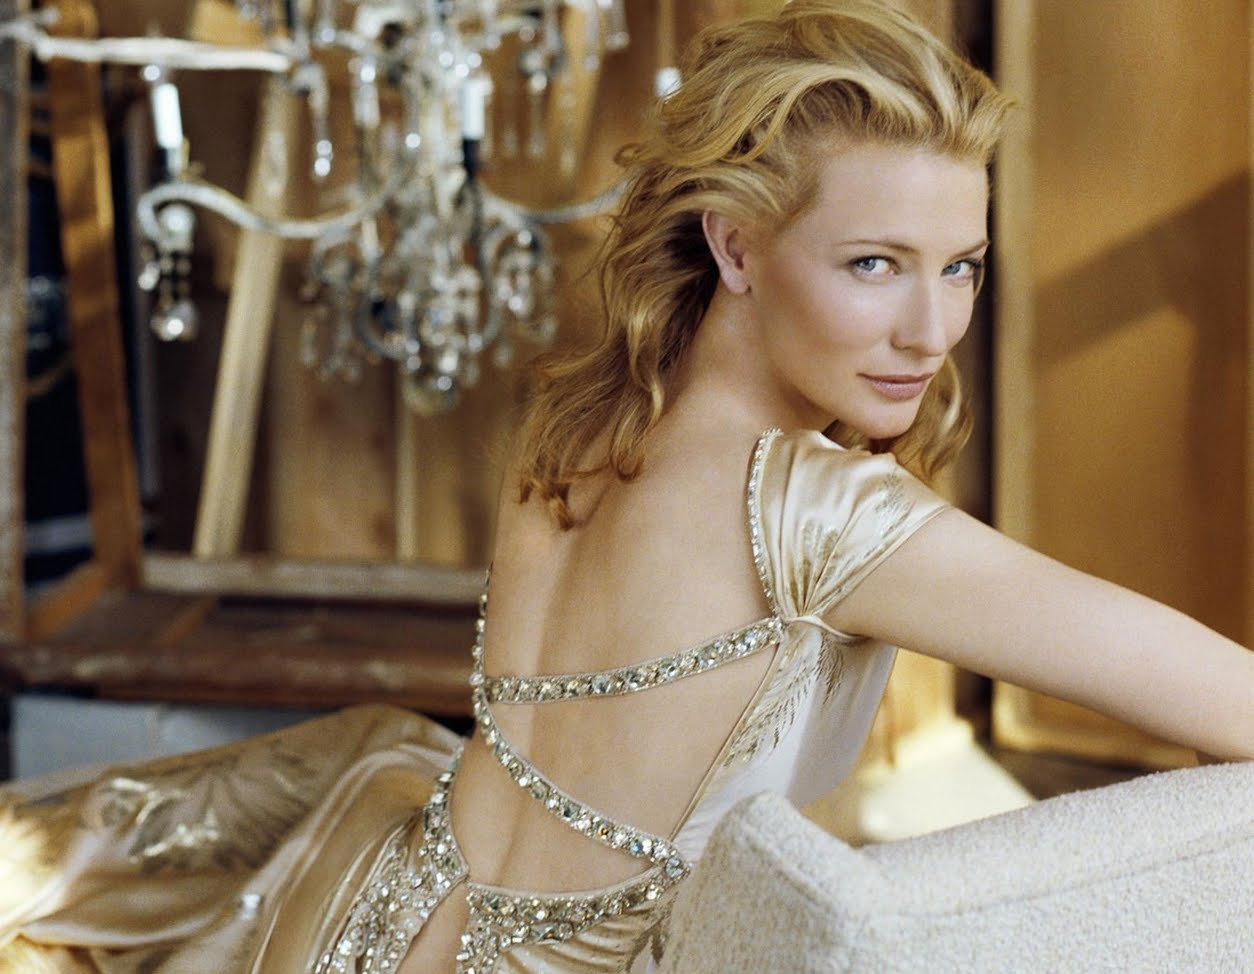 Overview of the roles of actress Cate Blanchett